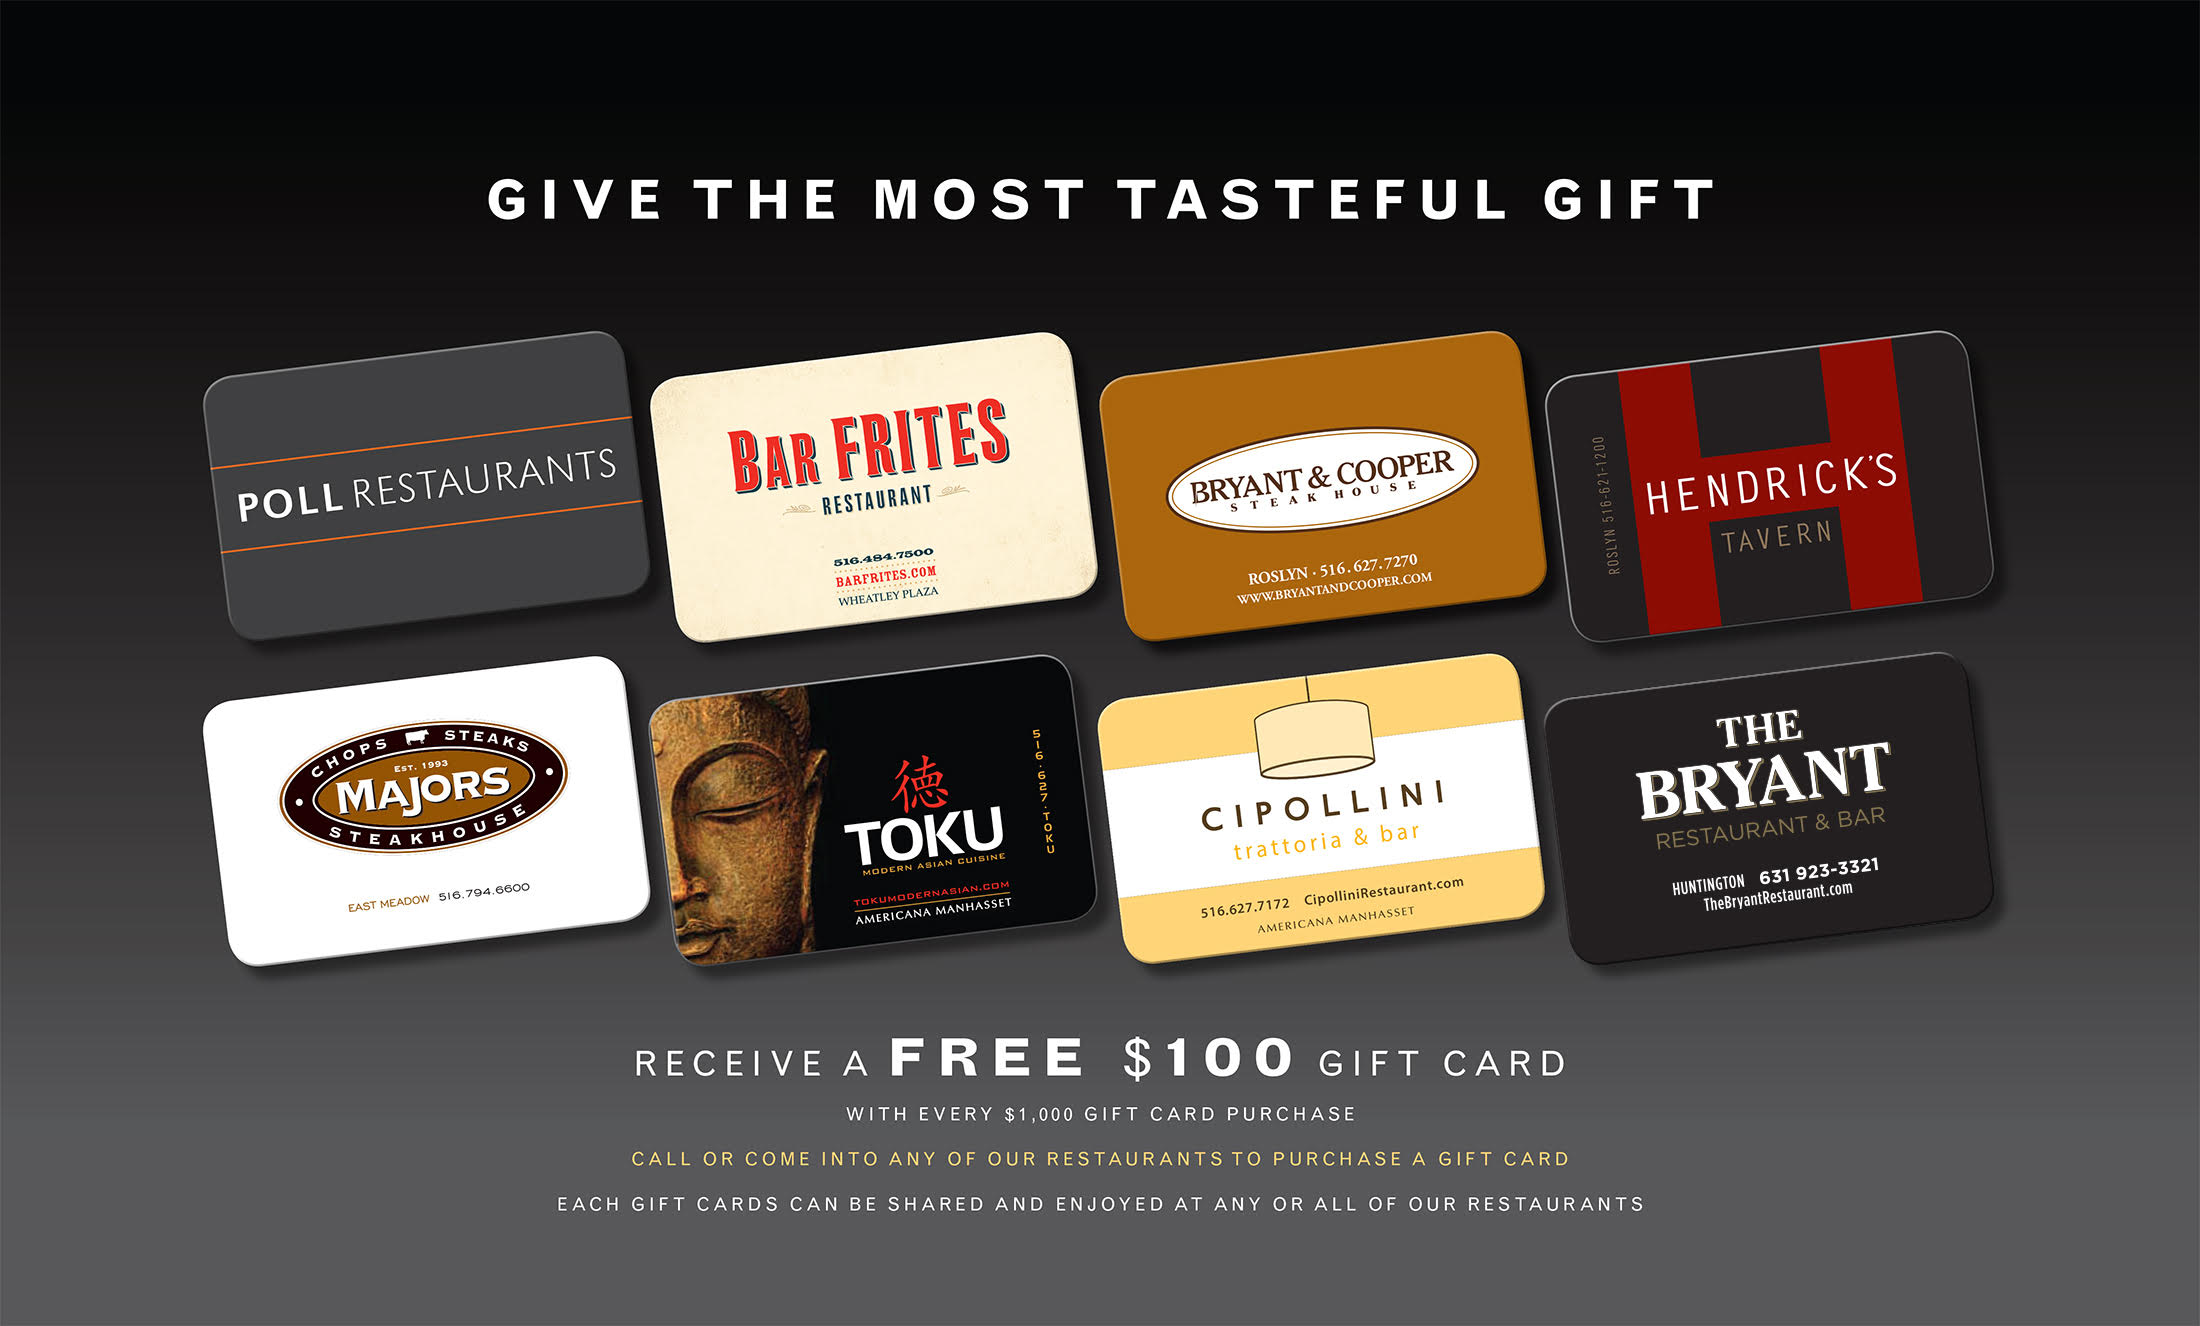 Receive a FREE $100 Gift Card with every $1,000 Gift card purchase, call or come into any of our restaurants to purchase a  gift card